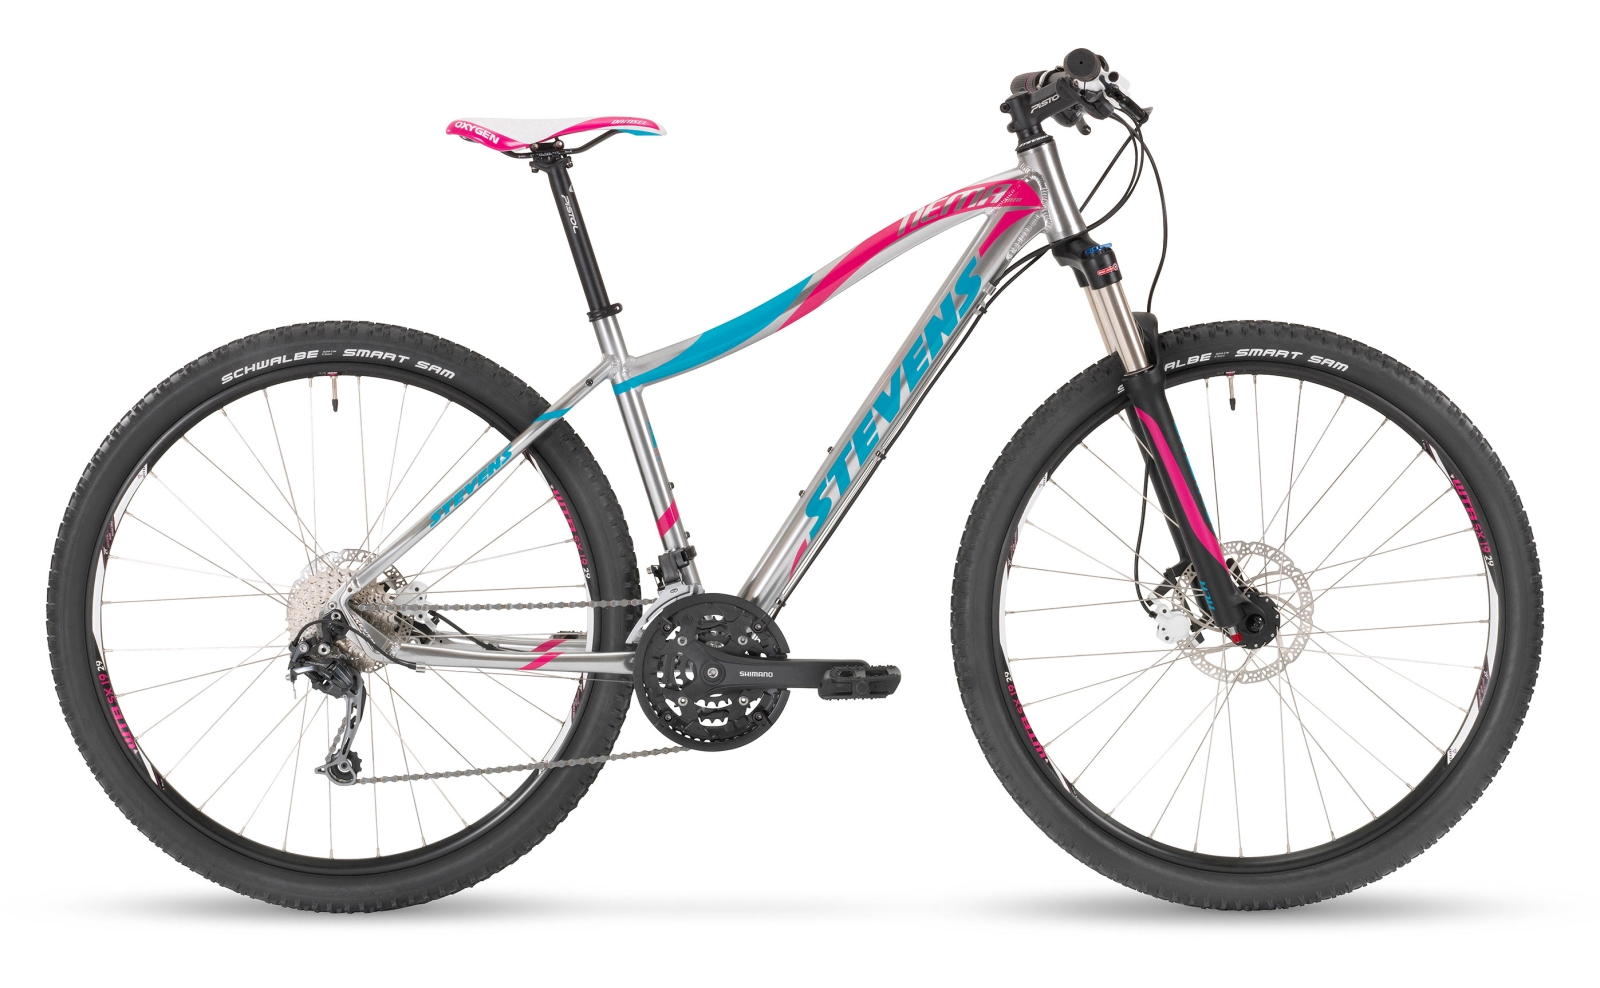 stevens nema 27 5 mountainbikes hardtail damen 2016. Black Bedroom Furniture Sets. Home Design Ideas